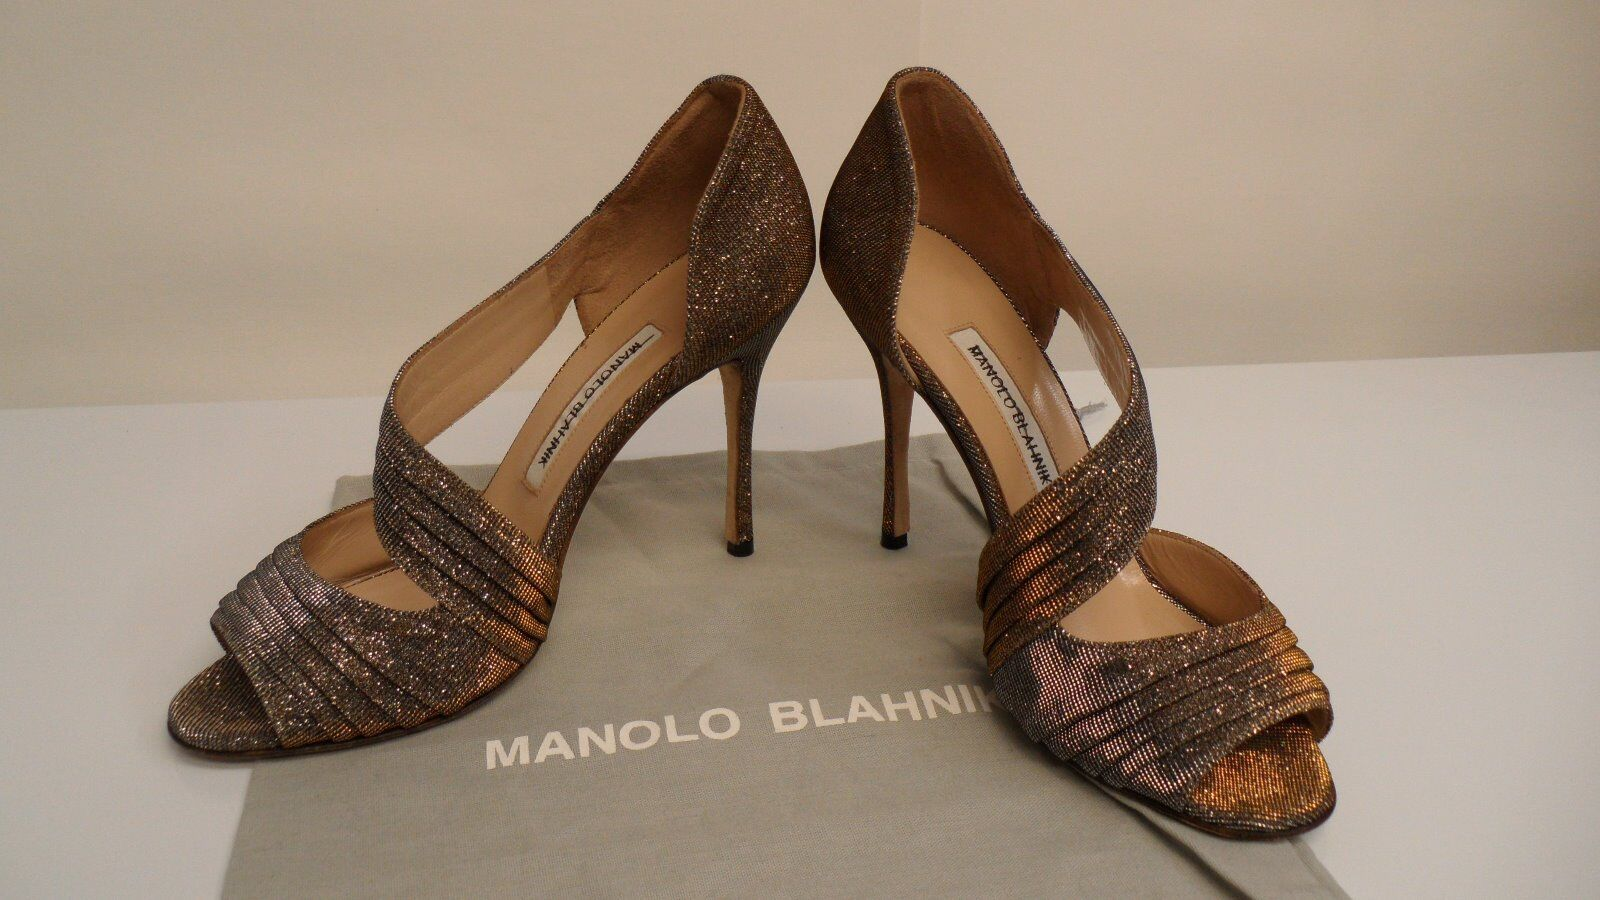 Manolo Blahnik Treuil Pleated Metallic Sandals Sz38 8 Made in